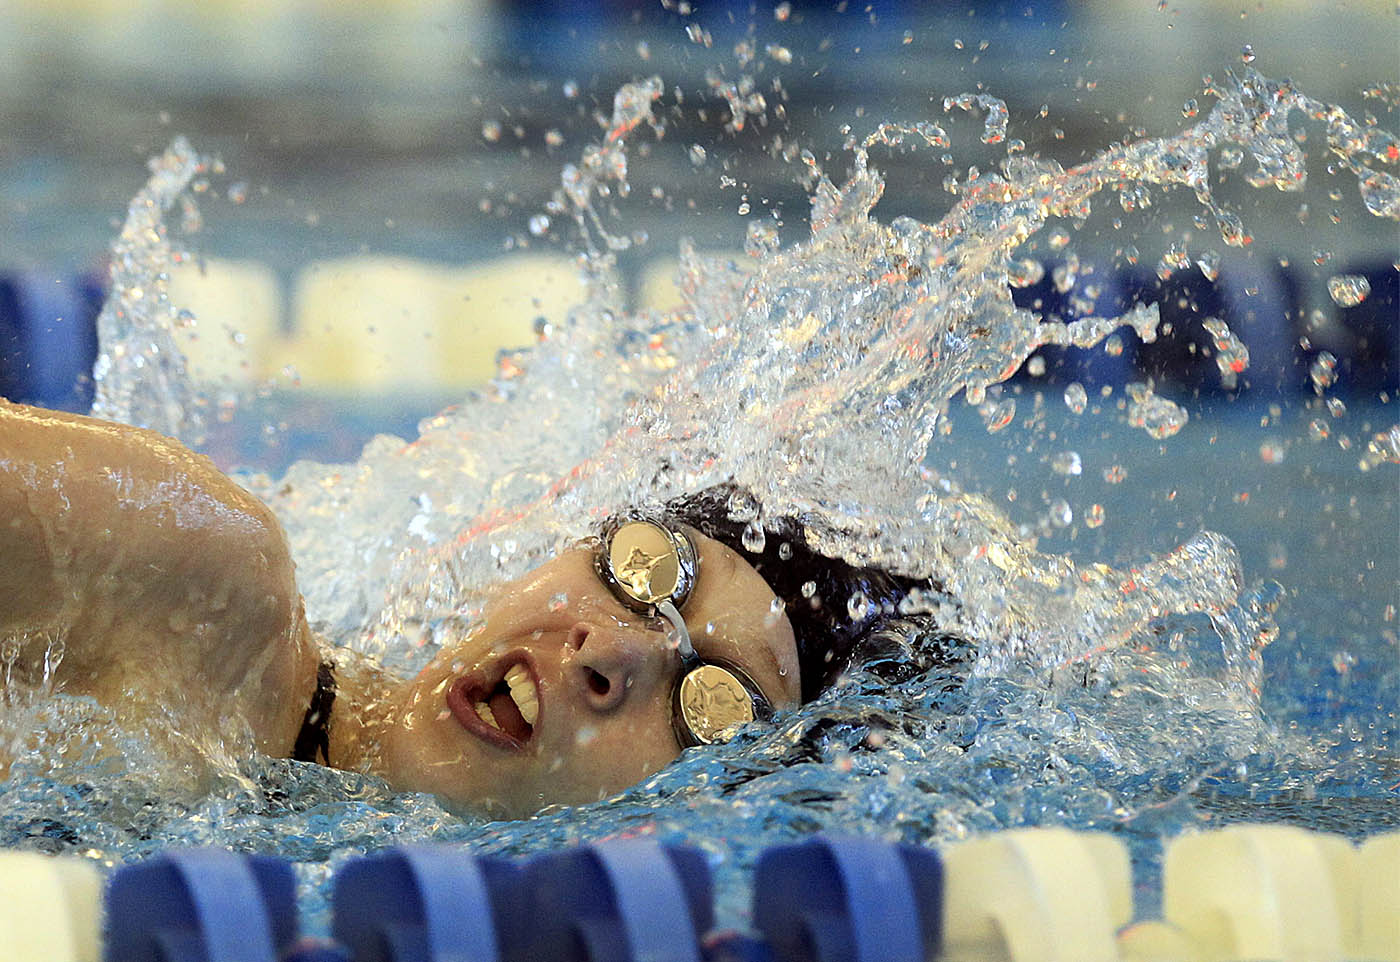 Amherst's Carolyn DeBoth wins the 100 yard freestyle with a time of 1:00.37 during a meet against the Buffalo Public Schools at City Honors high school on Tuesday, Sept. 6, 2016. (Harry Scull Jr./Buffalo News)